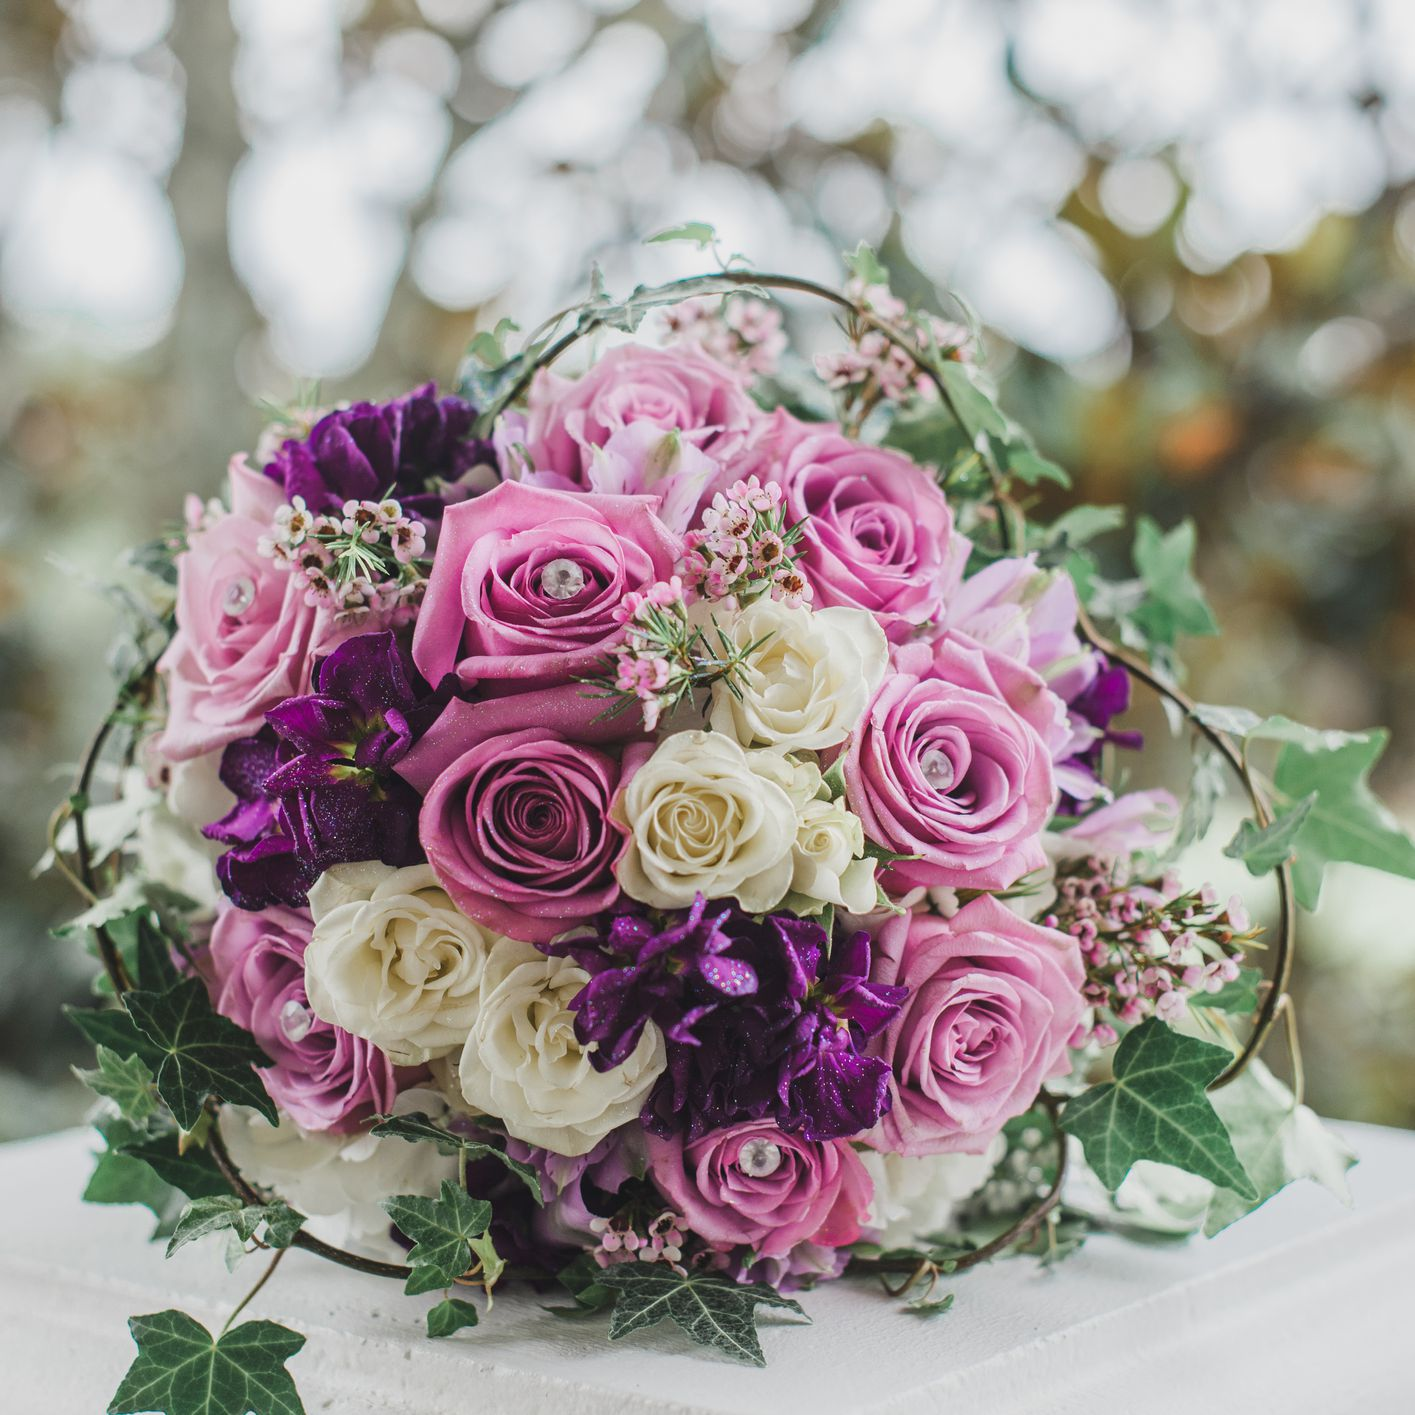 ideas to choose the beauty and elegance of white and purple wedding flowers 4 - Ideas to Choose the Beauty and Elegance of White and Purple Wedding Flowers